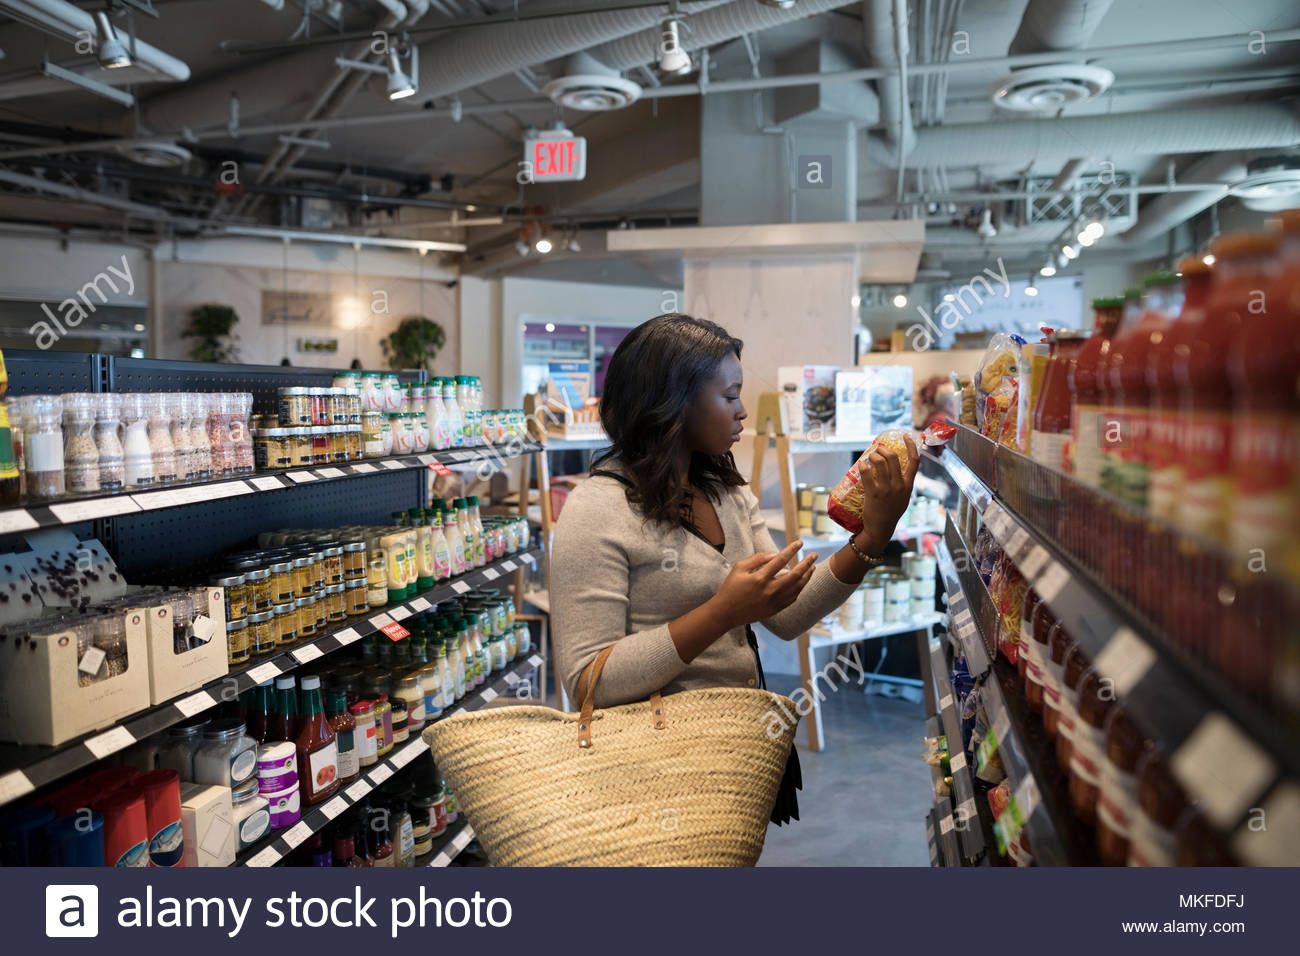 Young woman grocery shopping, reading label on package in market aisle - Stock Image